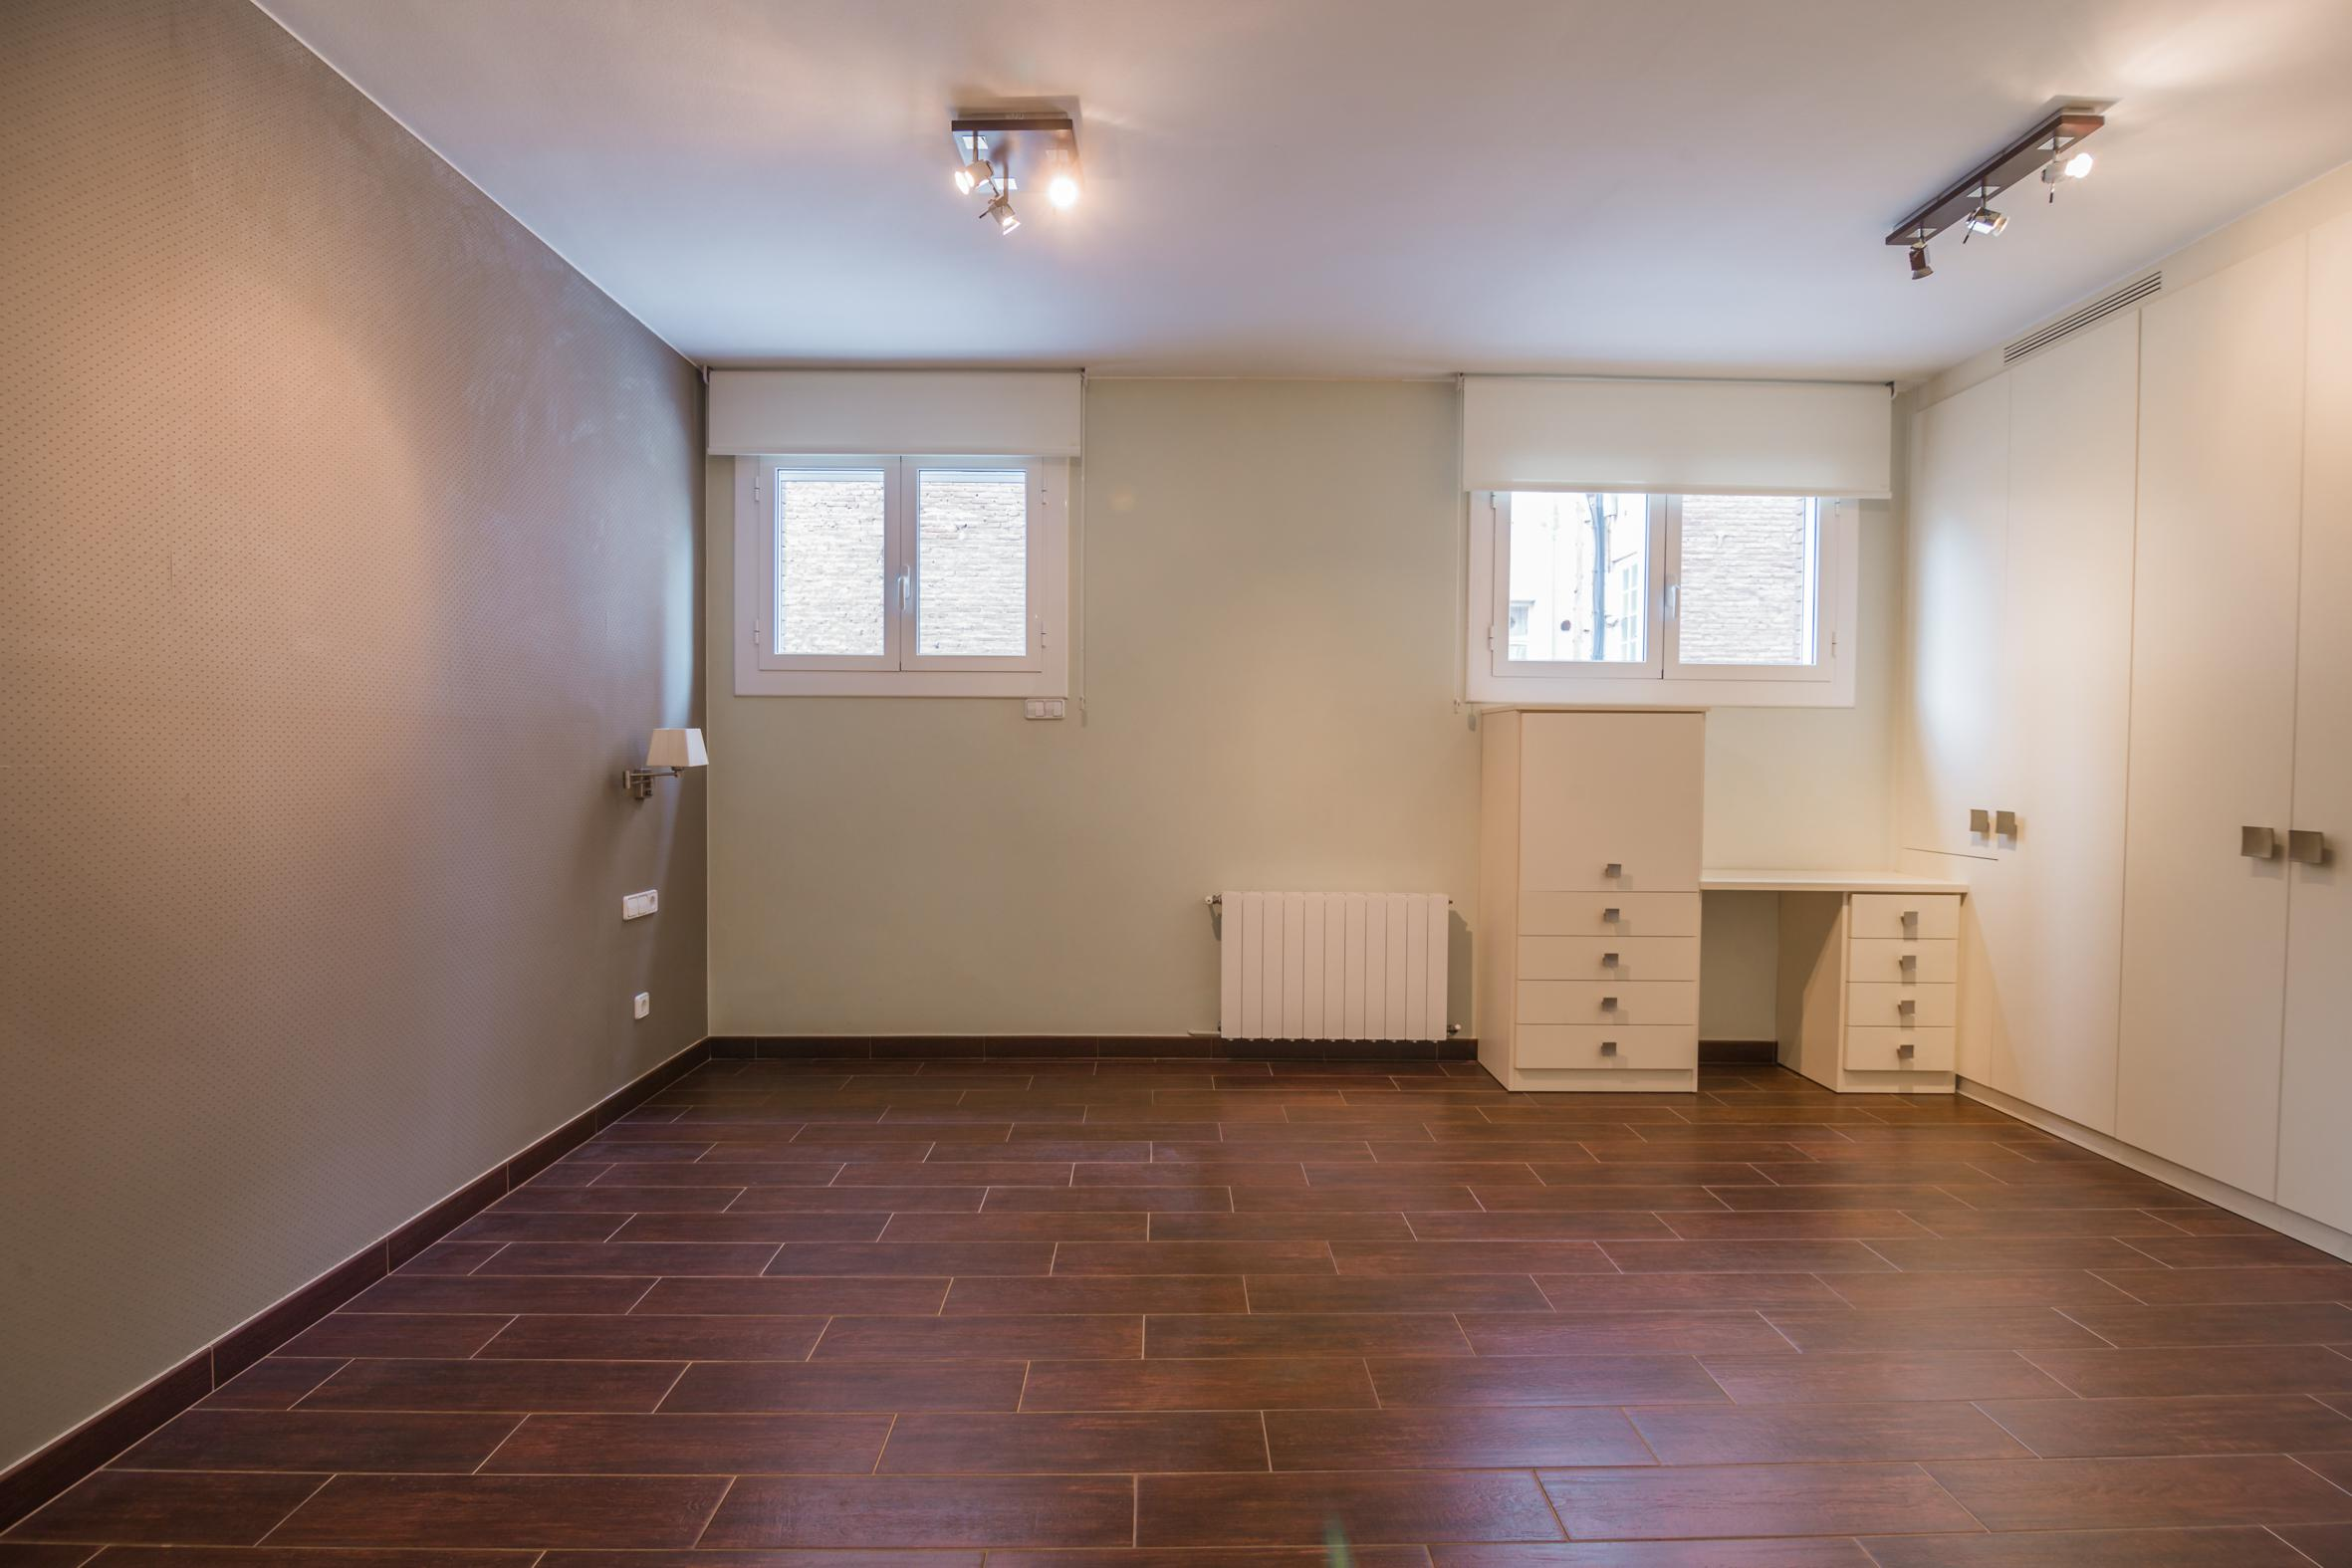 246902 Flat for sale in Les Corts, Pedralbes 12